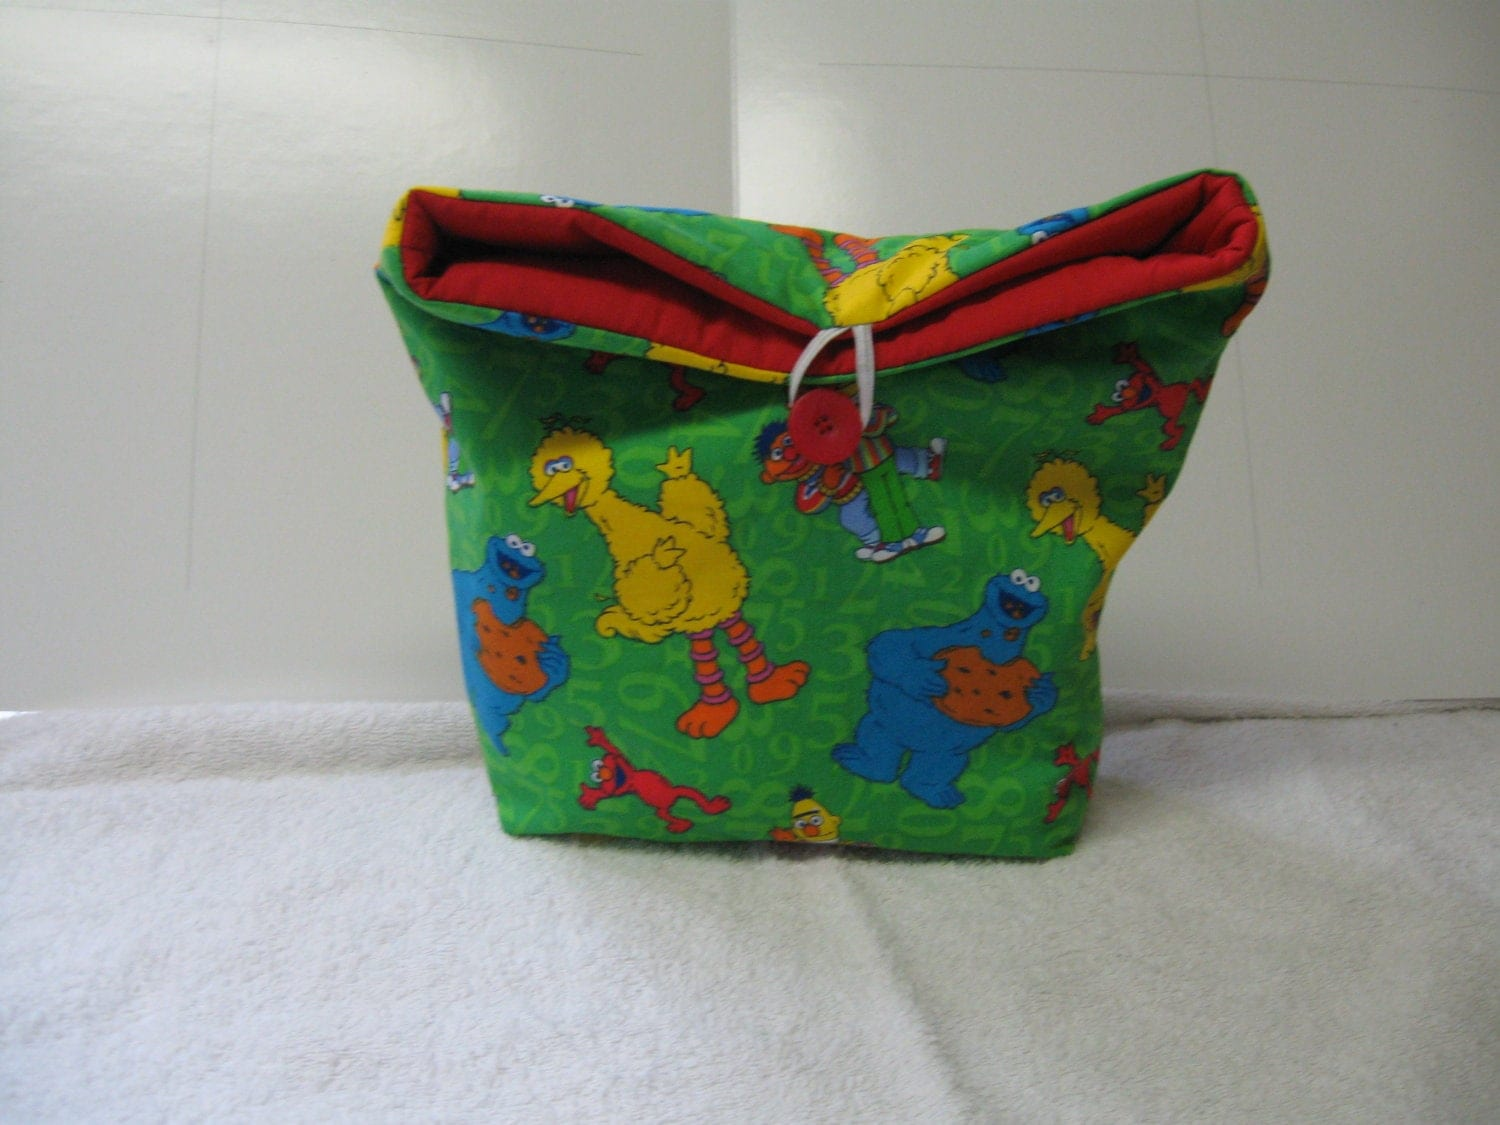 Go Green Insulated Sesame Street Print Lunchbag with Red inside All Cotton Reusable lunchbag or lunch sack